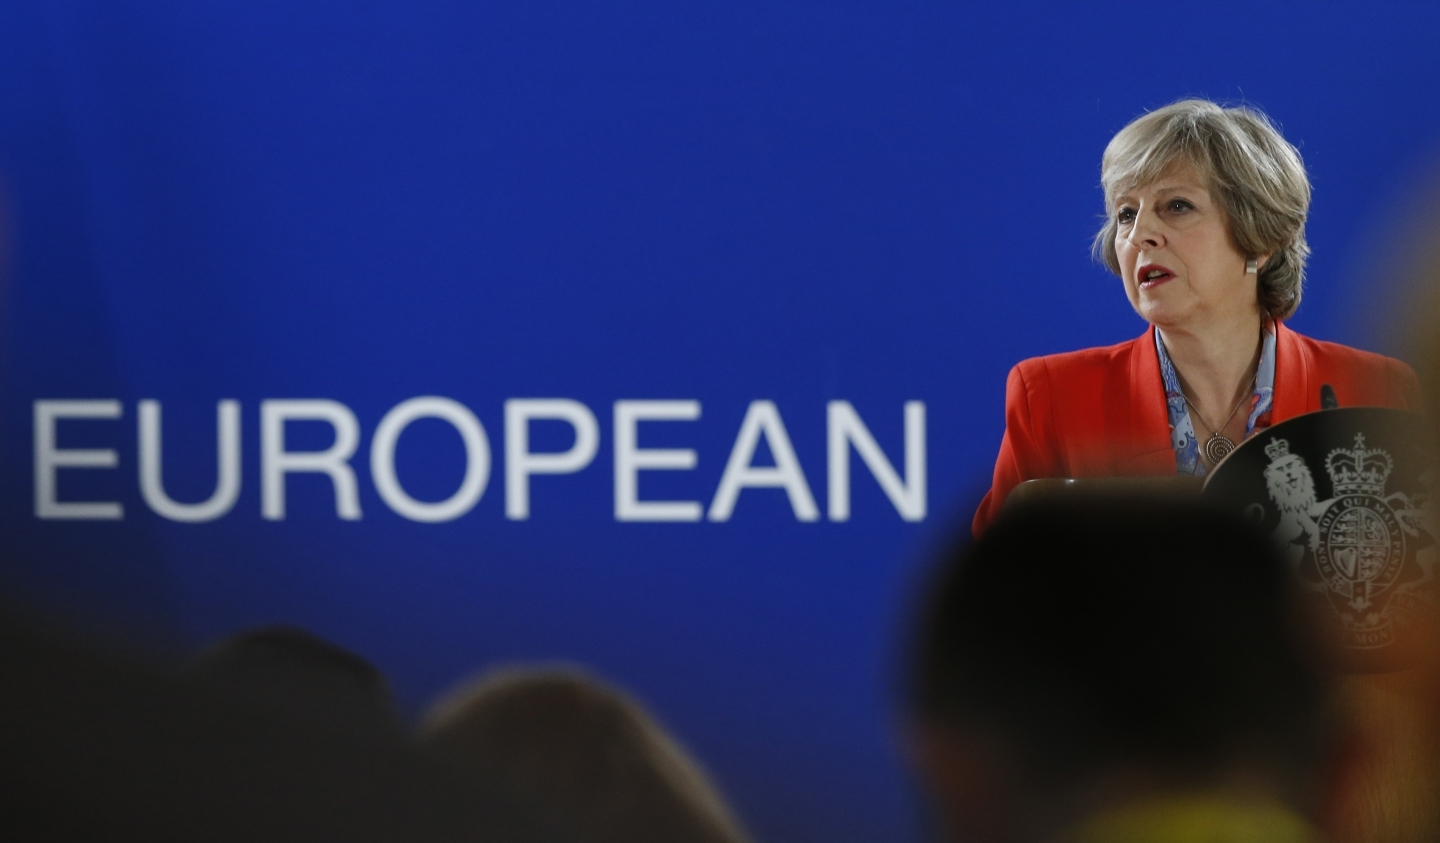 British Prime Minister Theresa May fields questions at an EU Summit in Brussels (AP Photo/Alastair Grant)